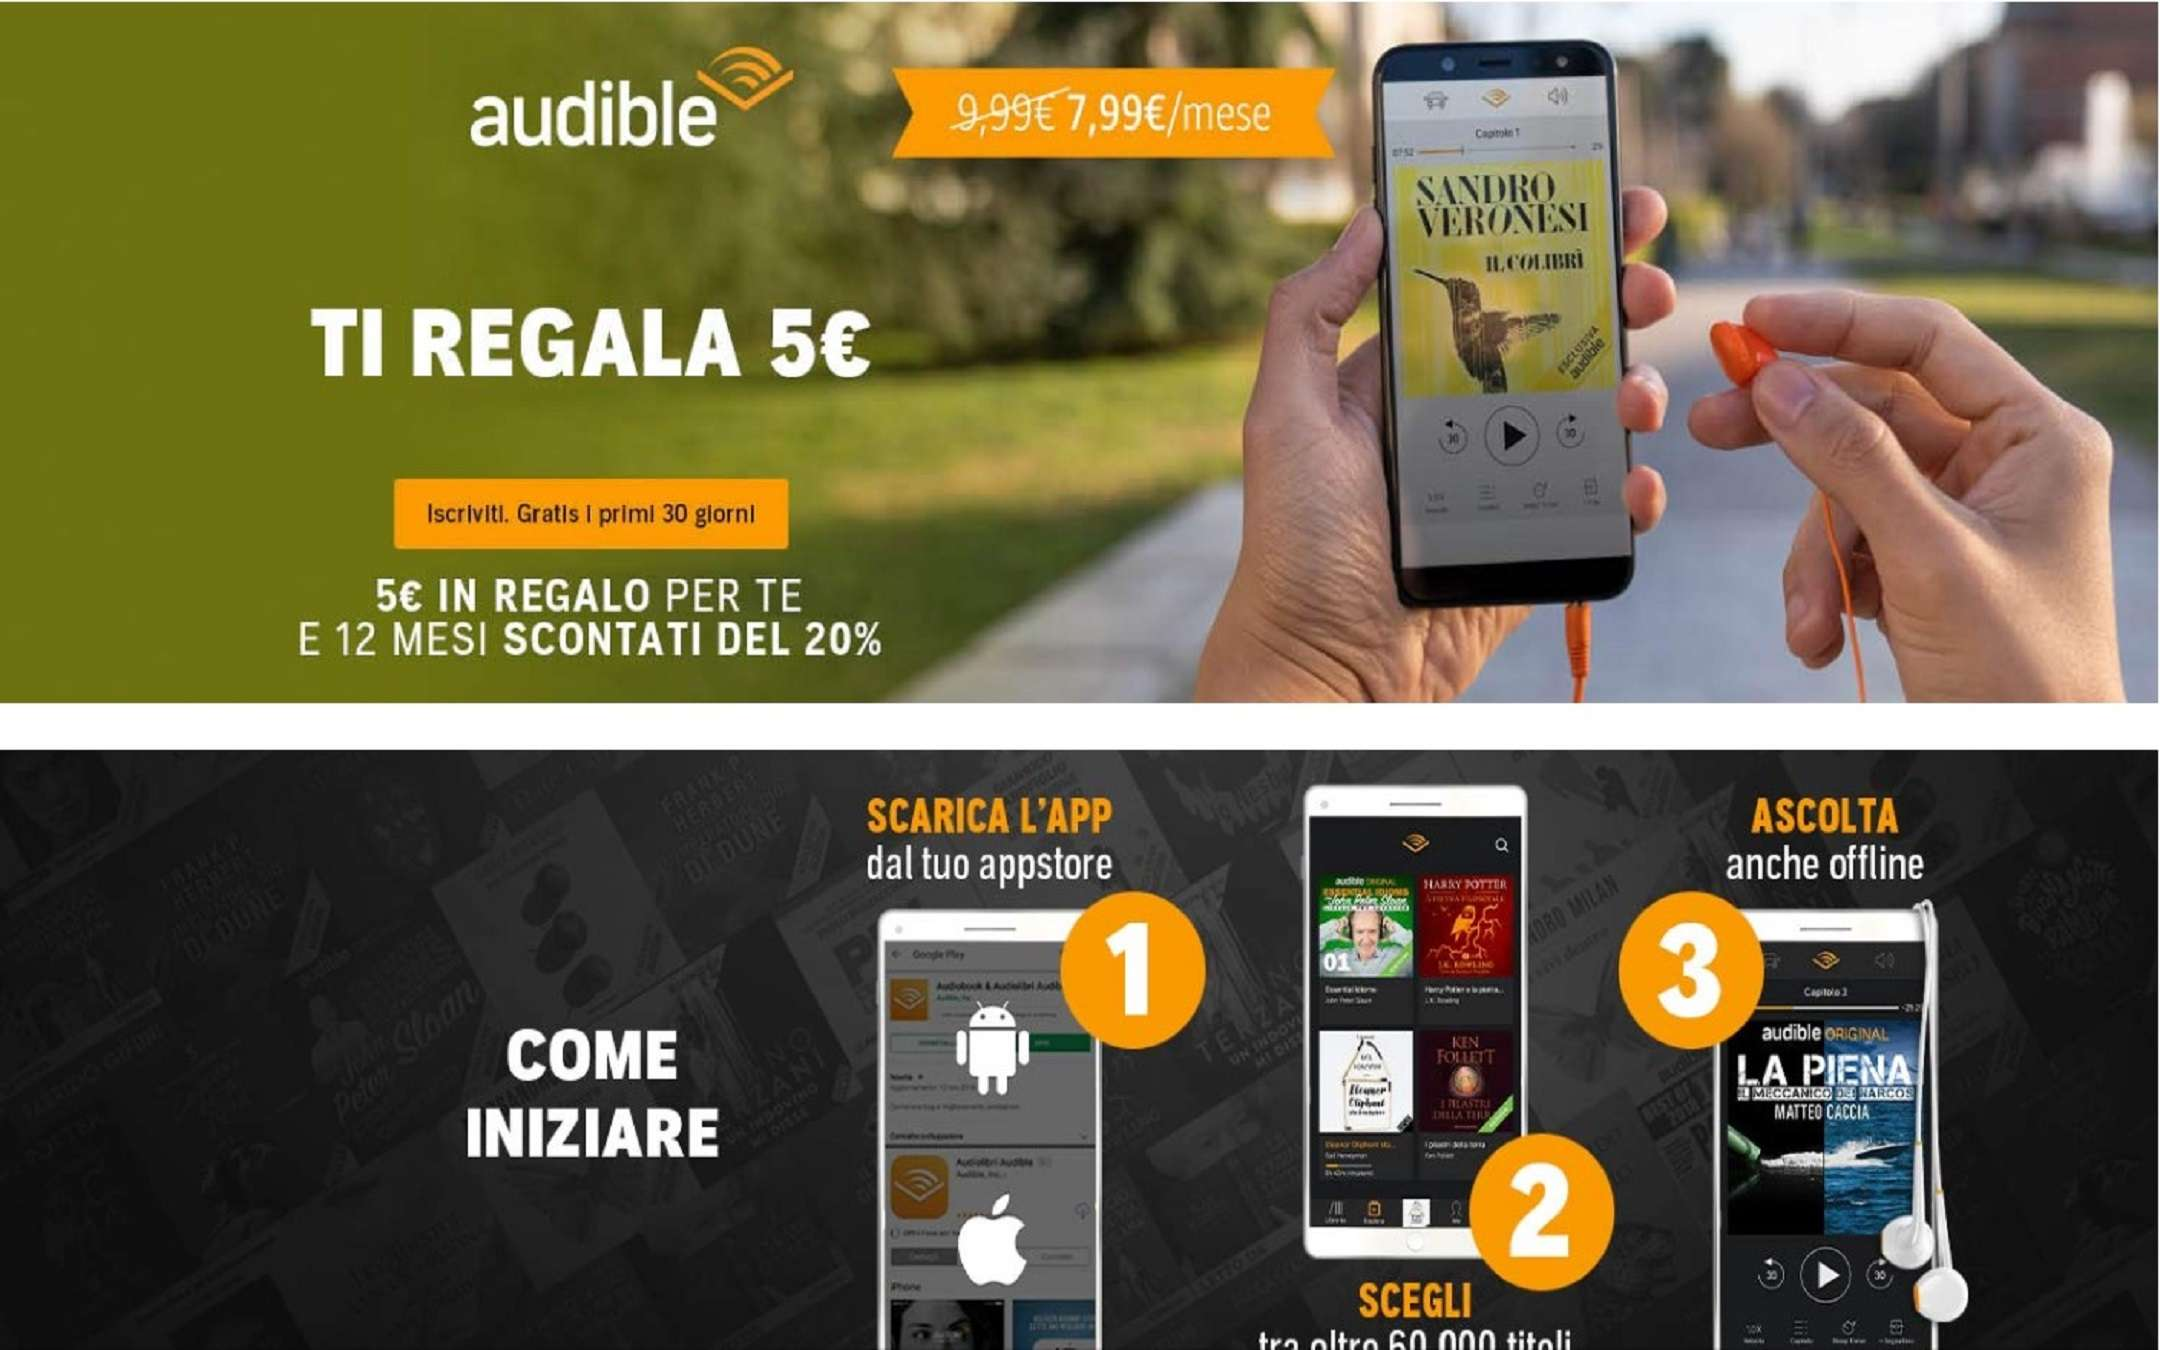 Audible gives a 5 euro discount voucher to new members